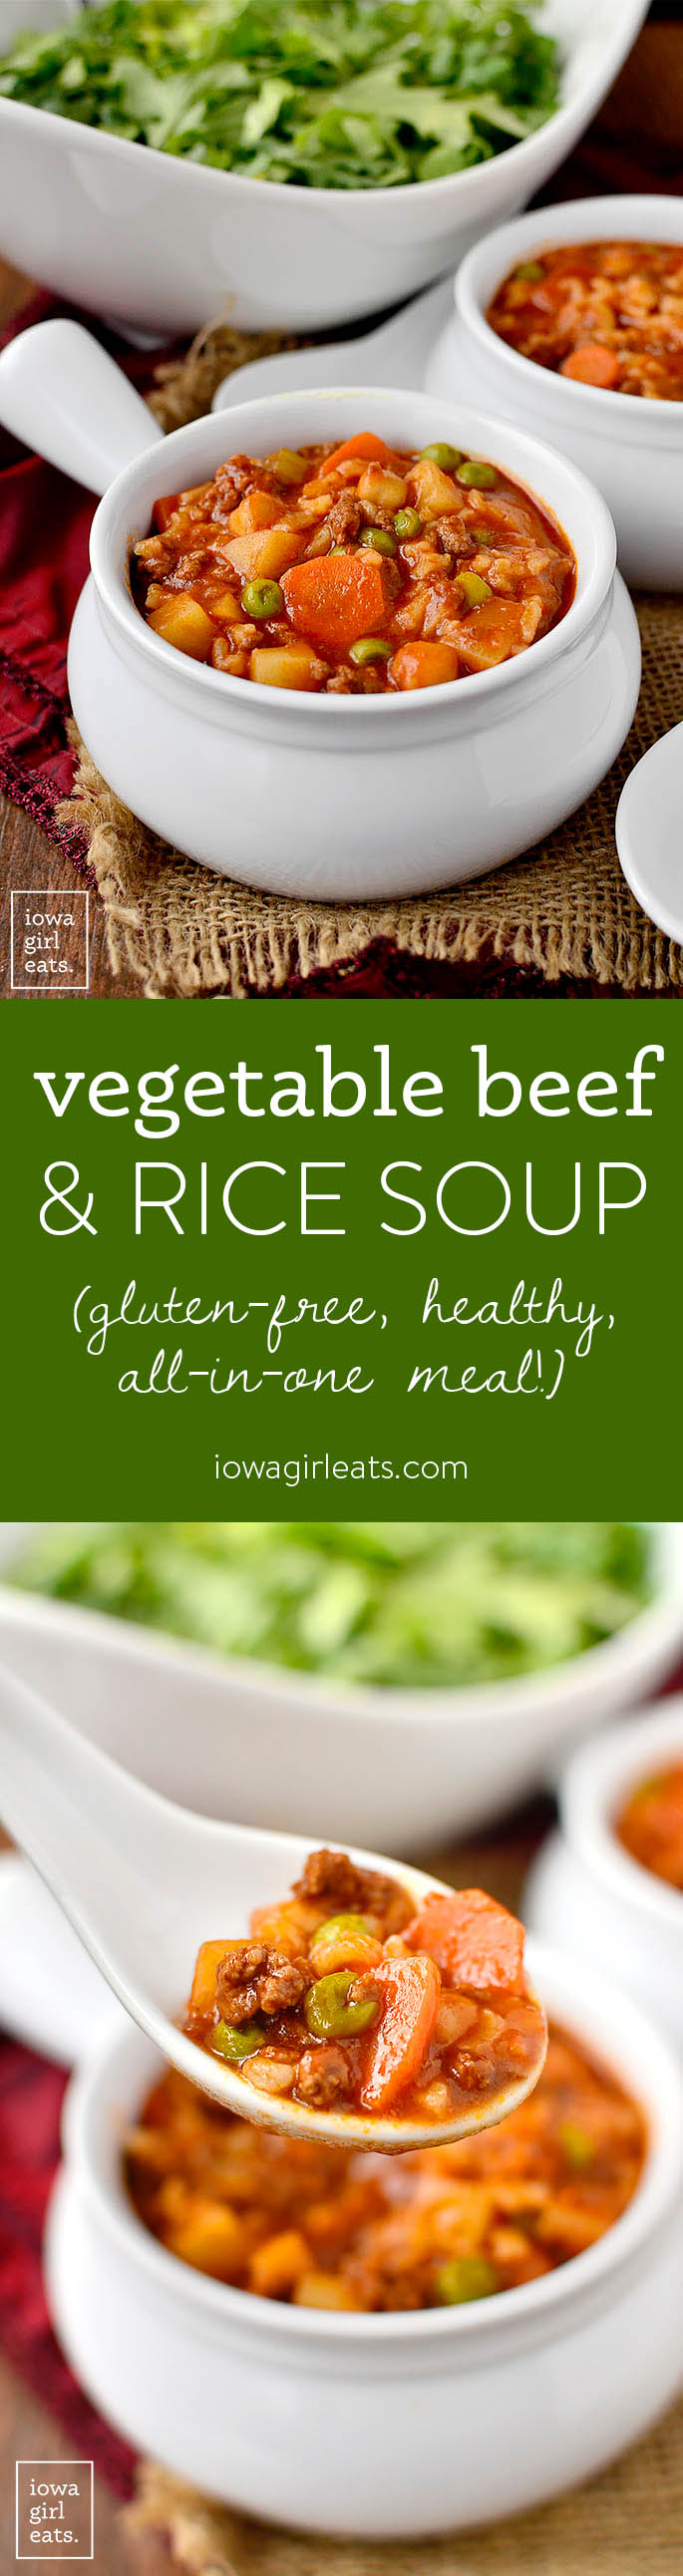 Vegetable-Beef-and-Rice-Soup-iowagirleats-Vertical